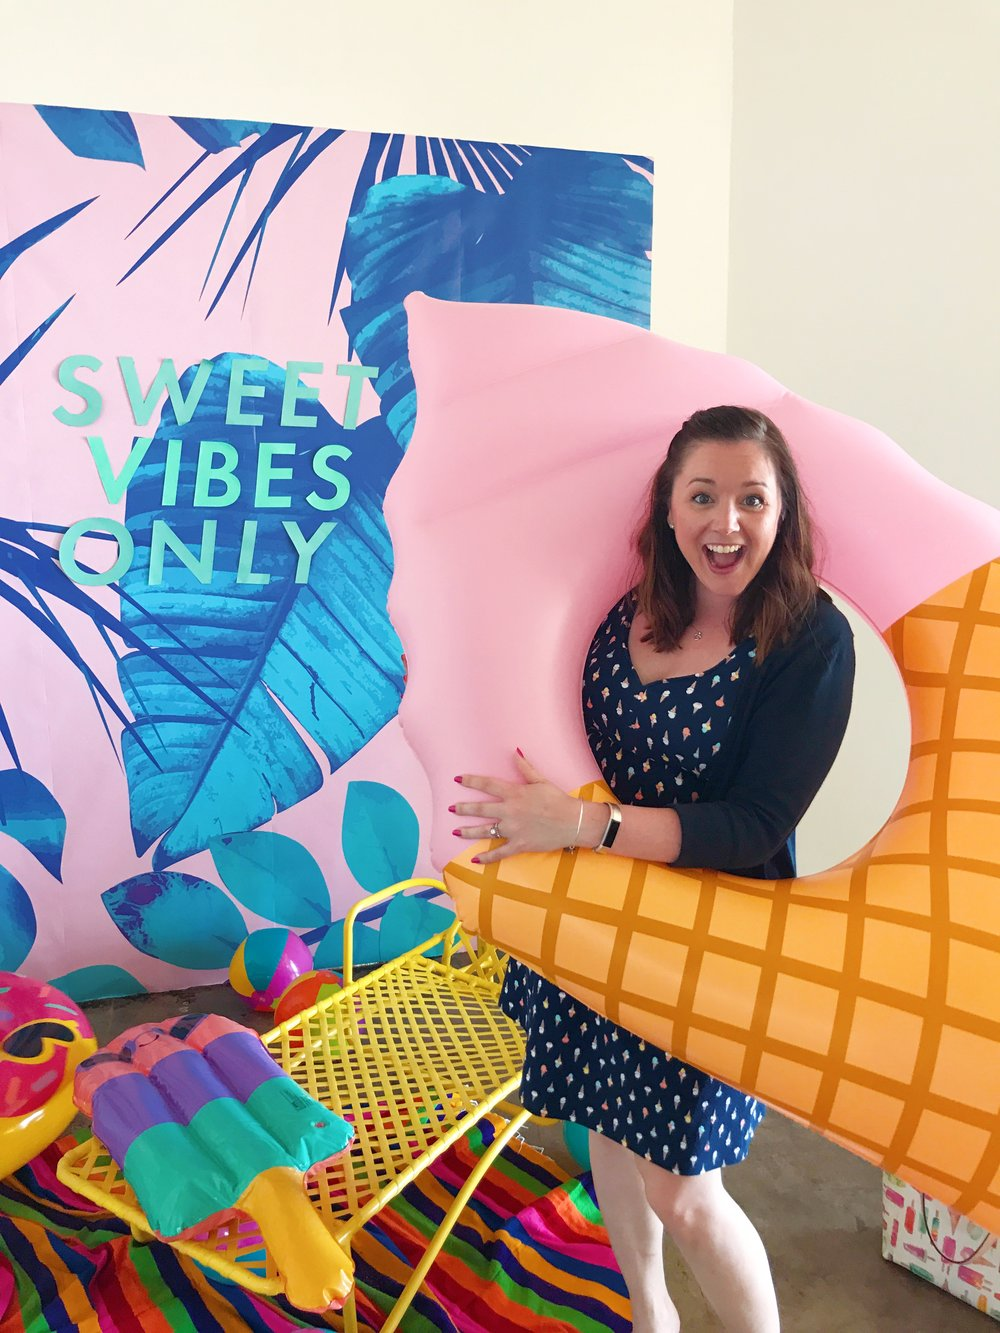 Sweet Vibes Only - Dessert Goals - Wandering Jokas Travel & Ice Cream Blog